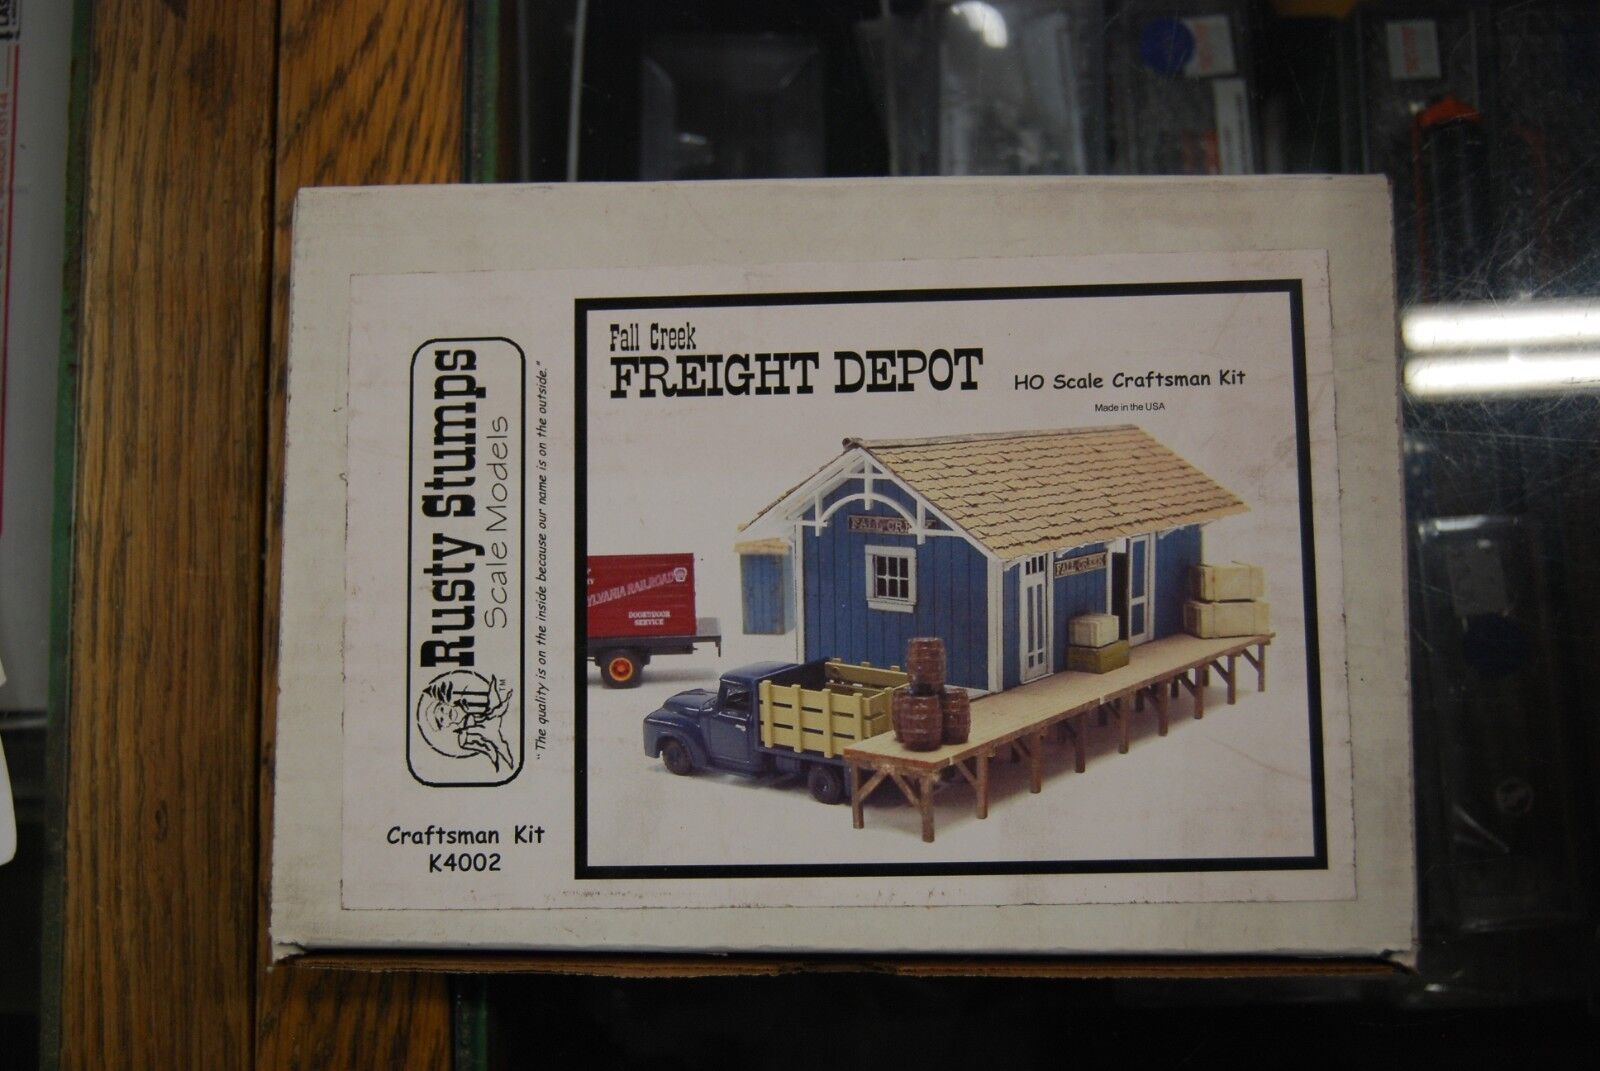 Lot 11-47 * HO Scale Rusty Stumps Scale Models  K4002, Fall Creek Freight Depot